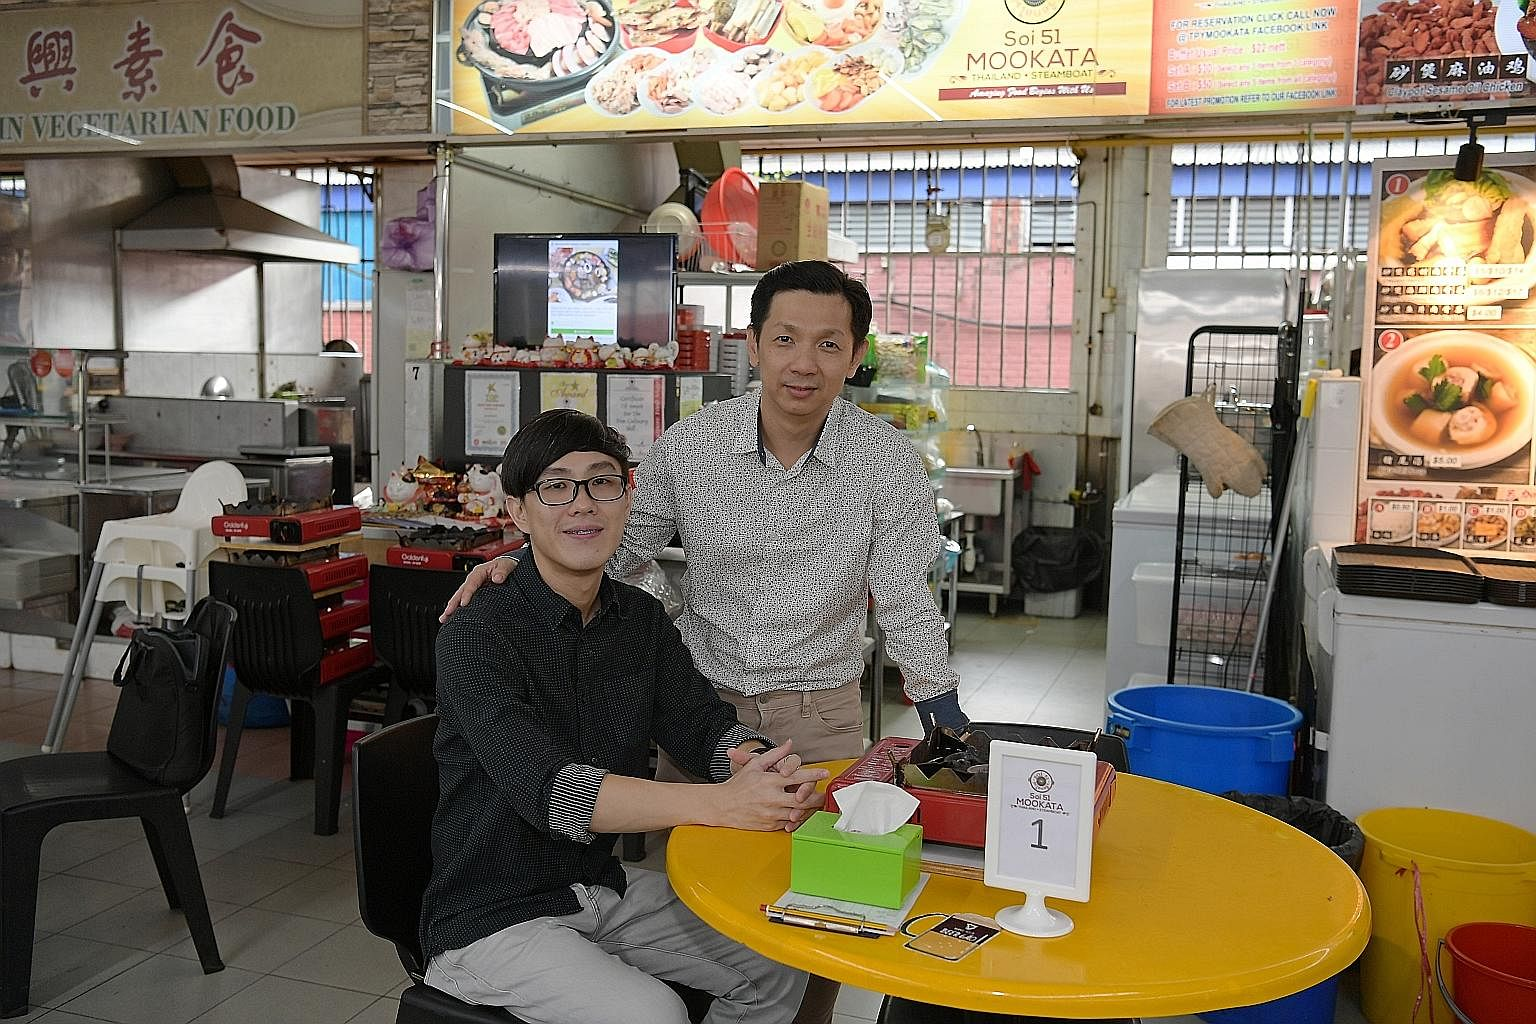 Mr Timothy Cheng (left) says he was blessed to have met Mr Philip Ang, who was a youth worker when he spotted Mr Cheng when he was a boy wandering around aimlessly at a market in Toa Payoh. Mr Cheng's father died when he was just 11, and he had to ca